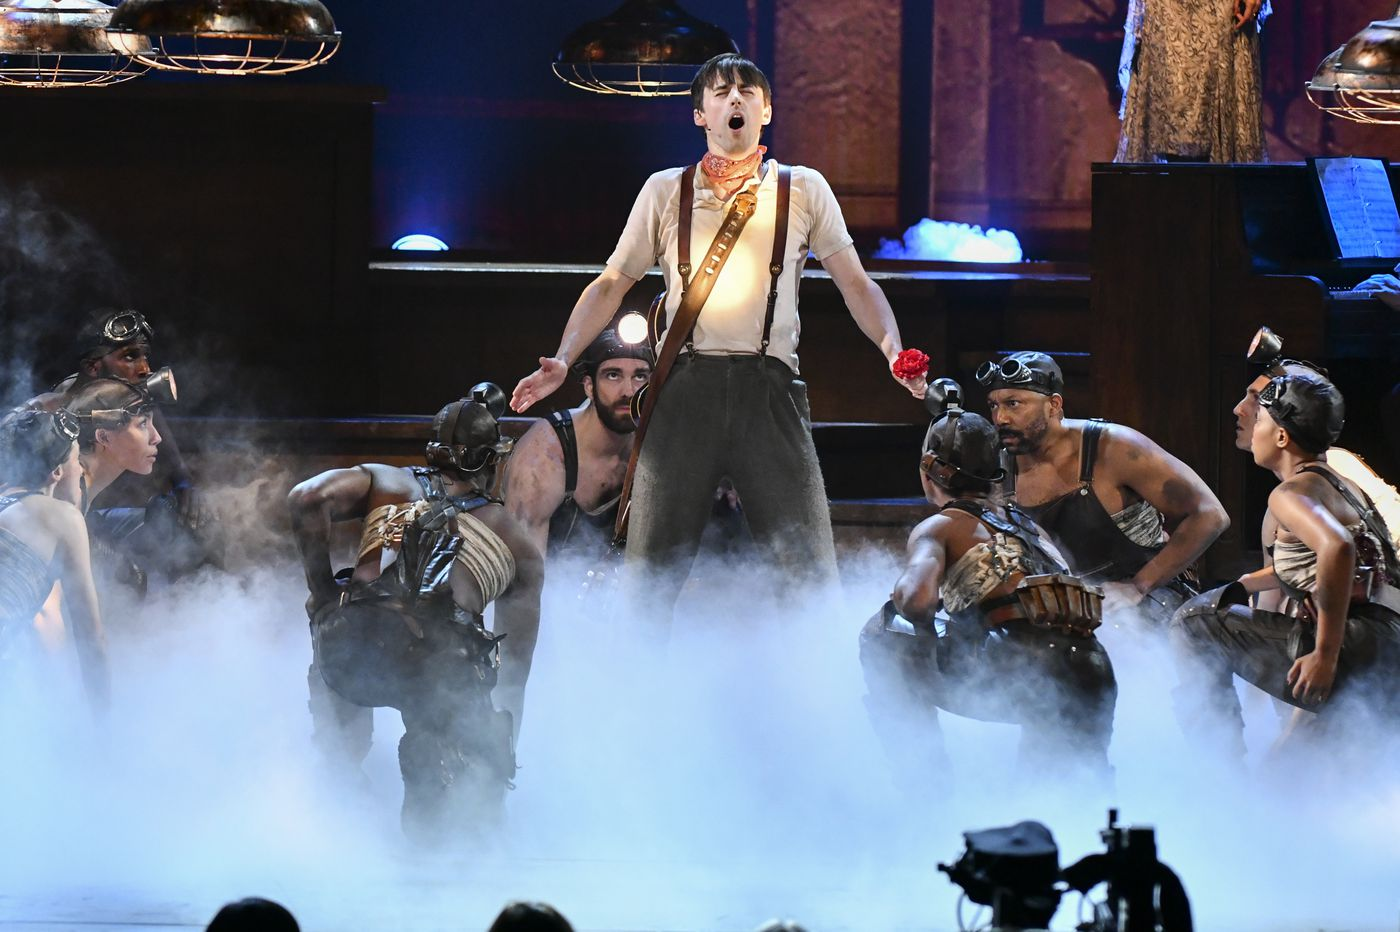 Tony winners: 'Hadestown,' from a producer with Philadelphia ties, captures 8 awards, including best musical